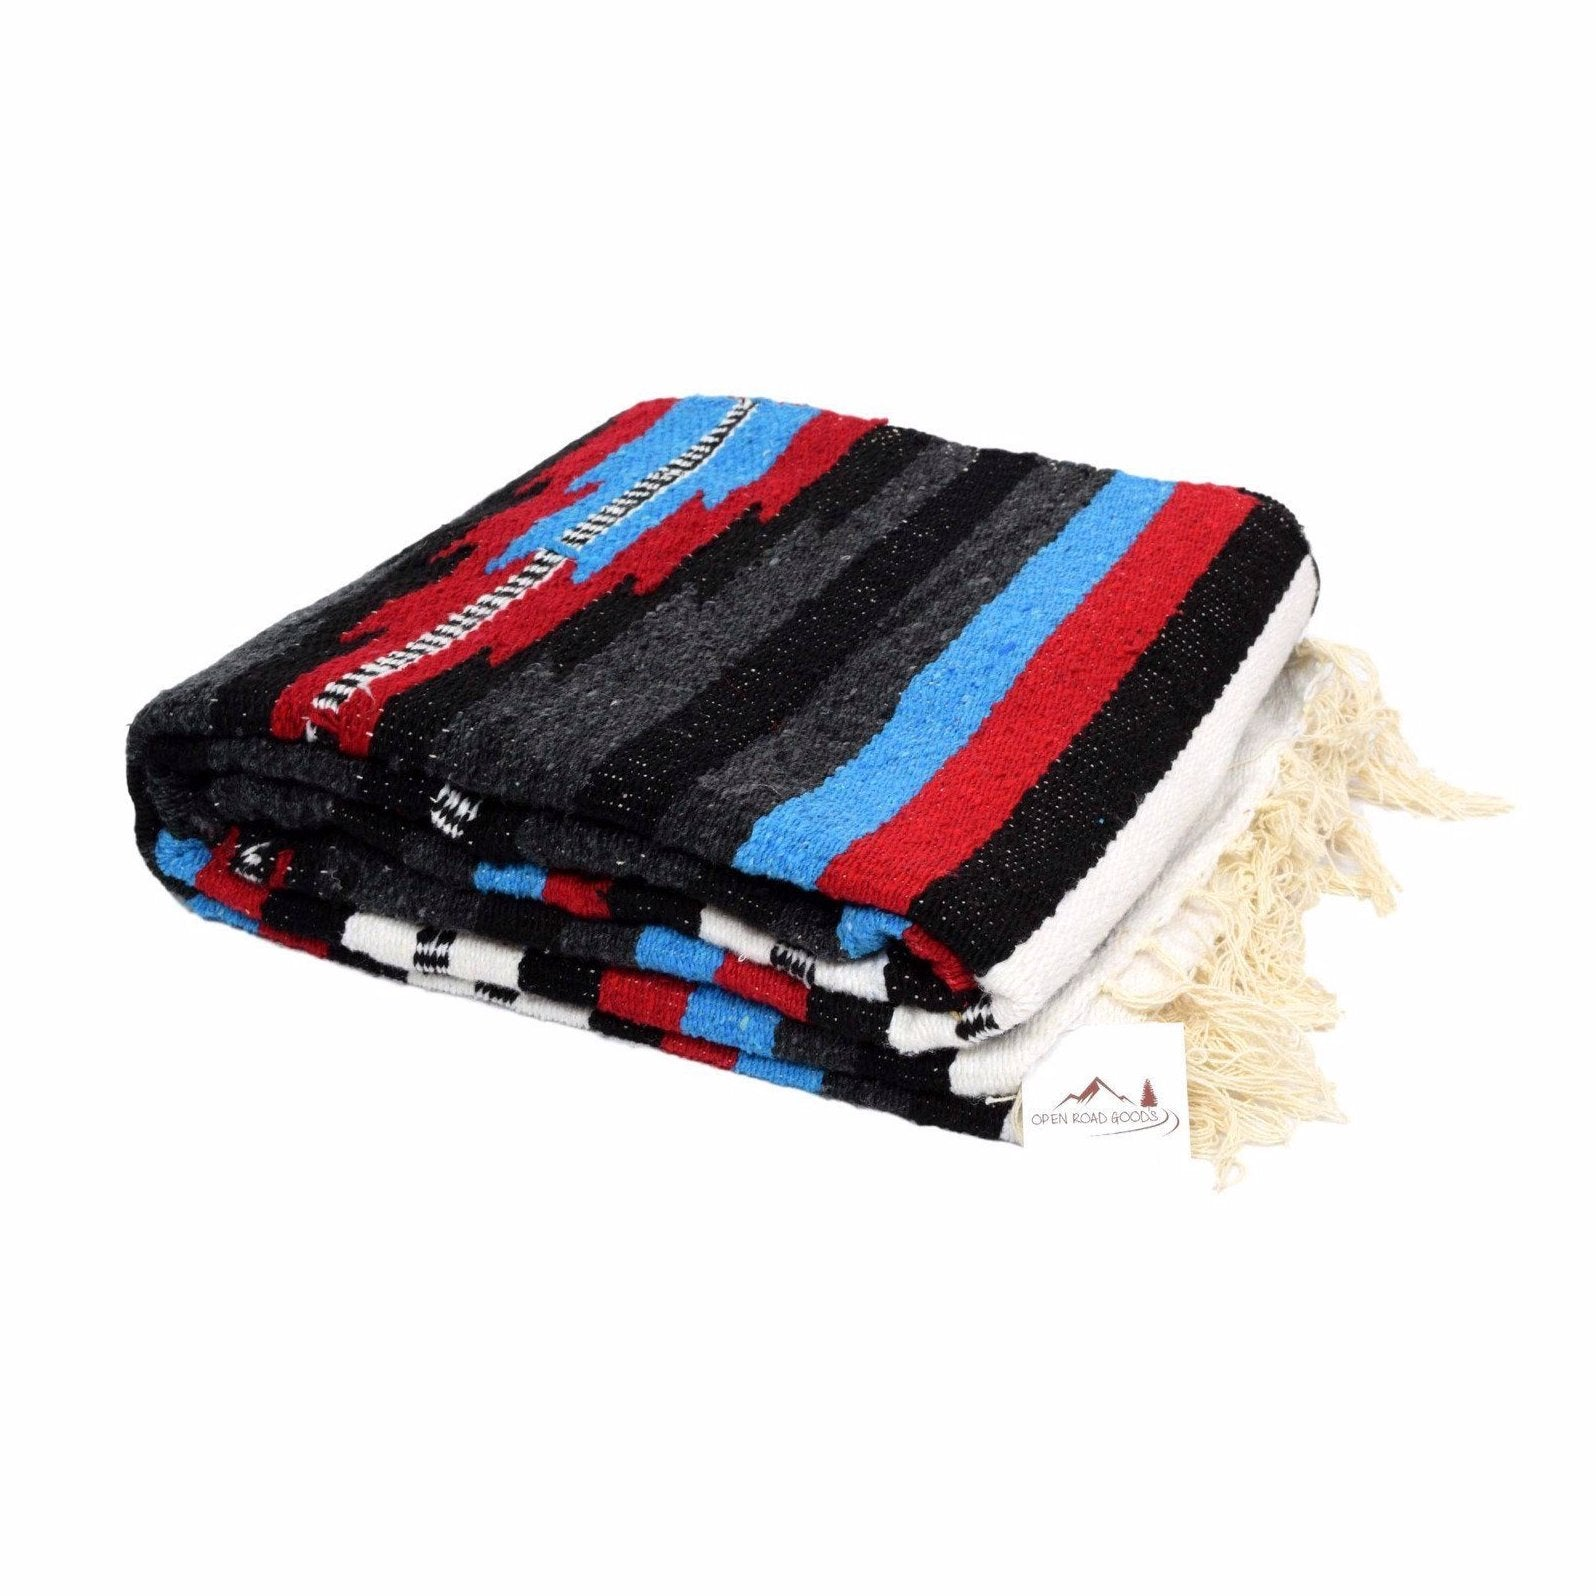 Mexican Diamond Yoga Blanket XL Handwoven Thick in Black Blue